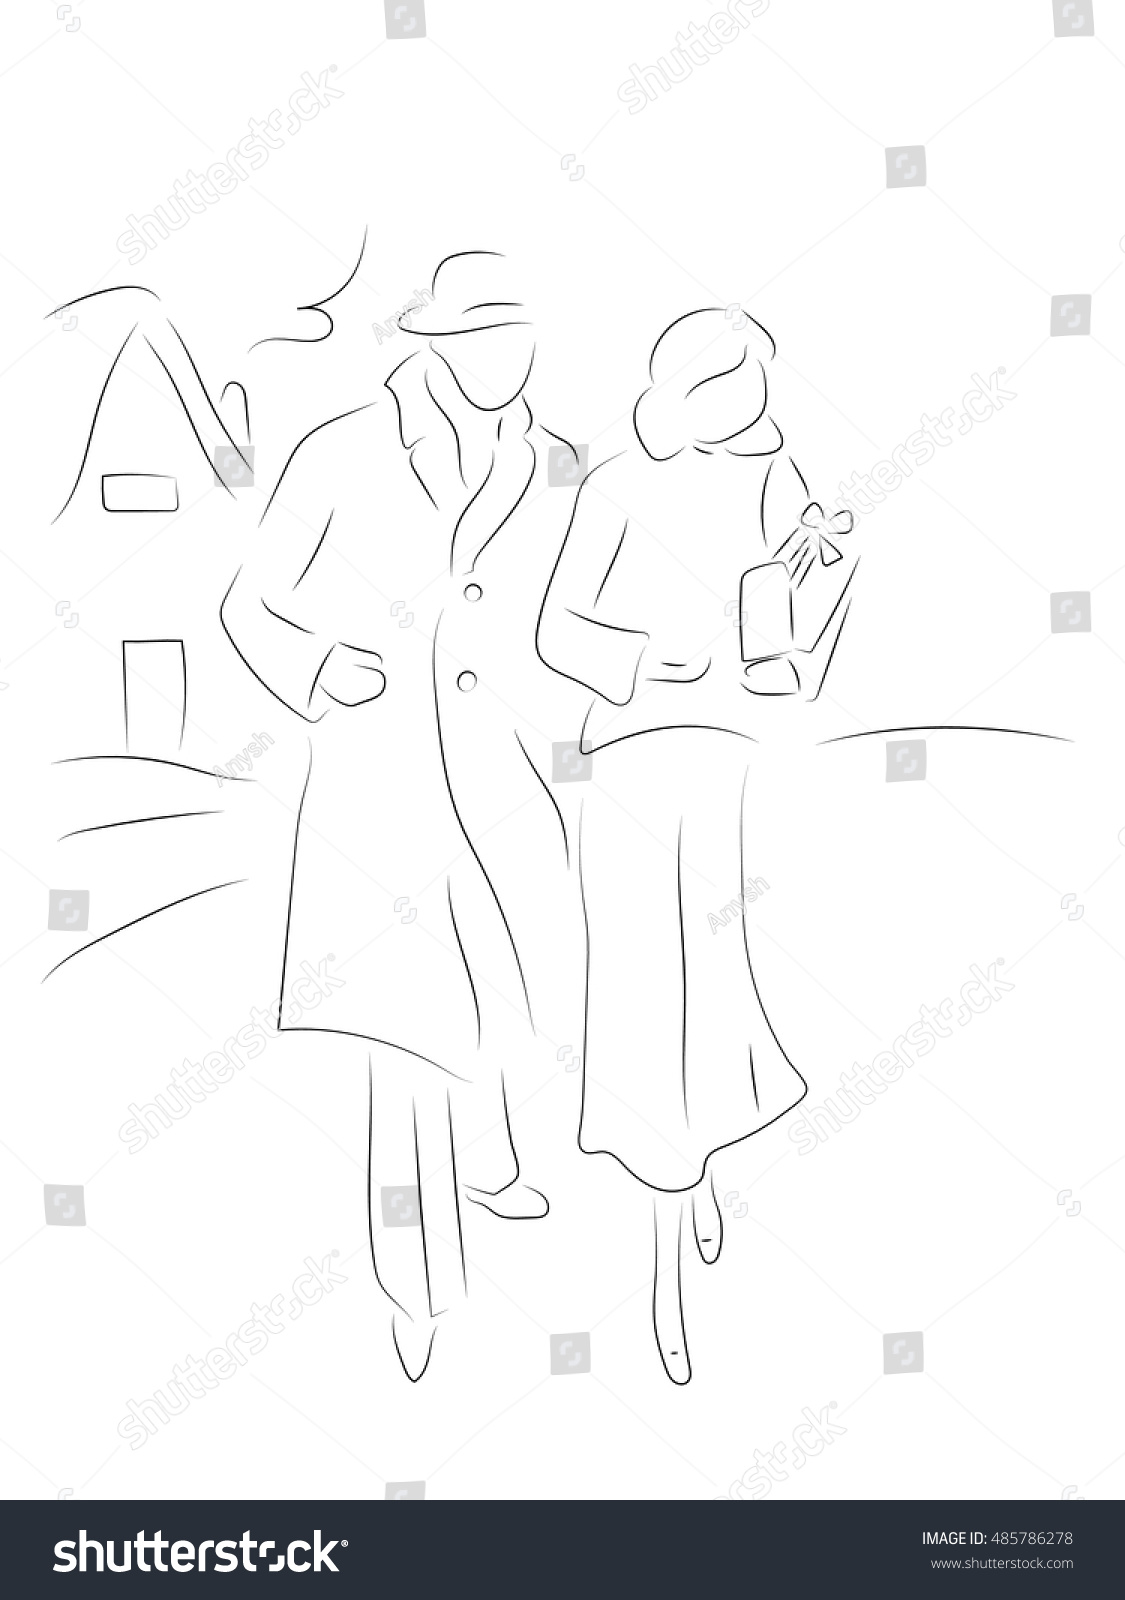 Man and woman walk in winter clothes pencil drawing hand drawn